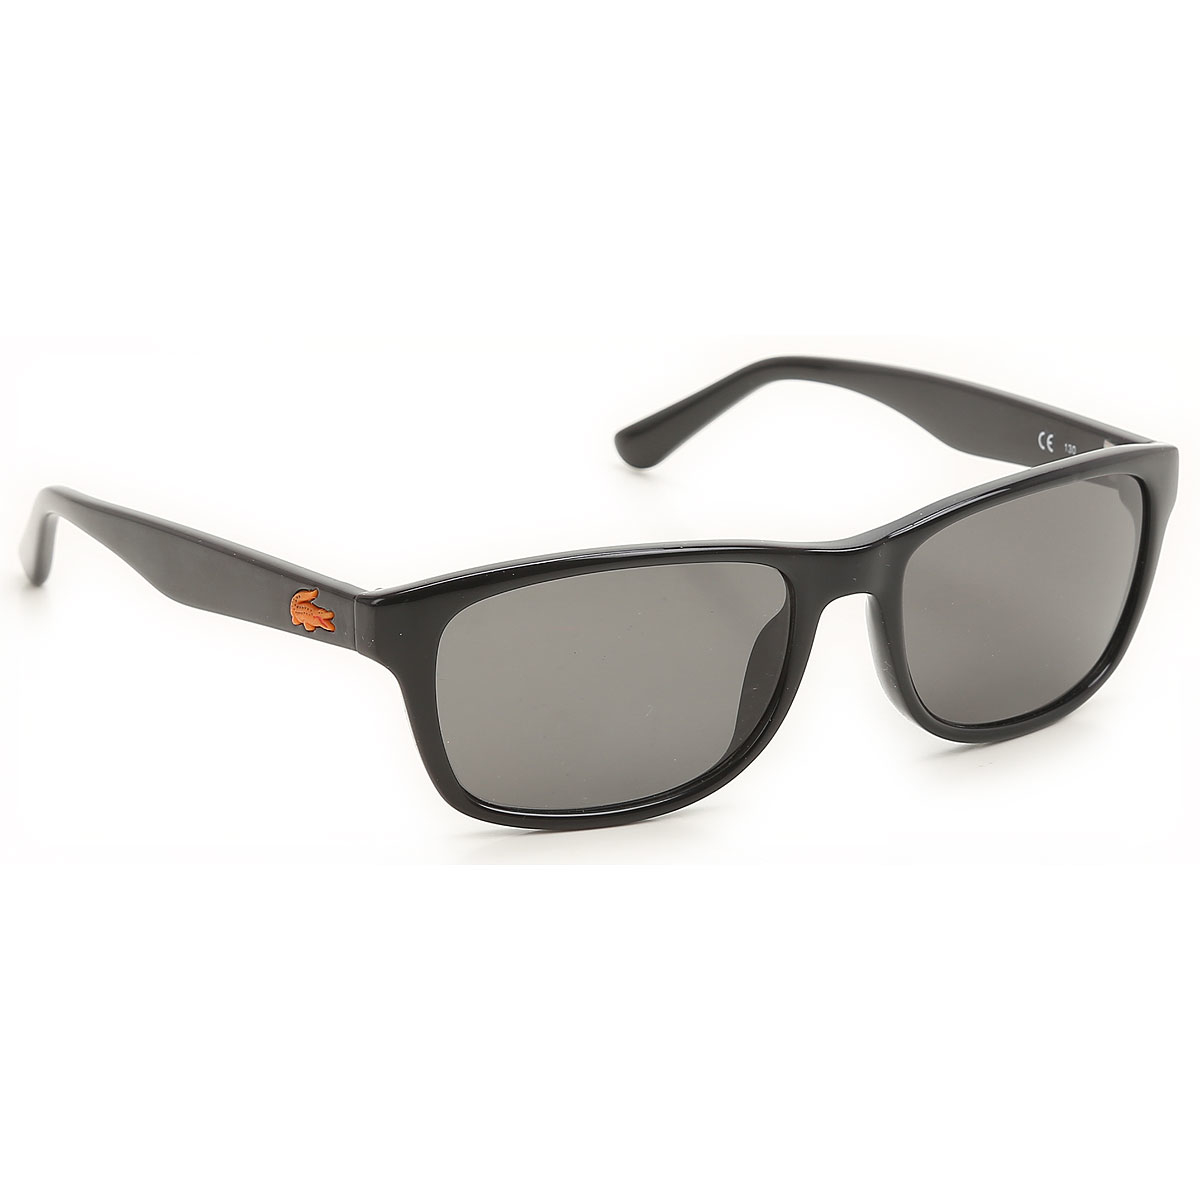 Lacoste Kids Sunglasses for Boys Black Canada - GOOFASH - Mens SUNGLASSES